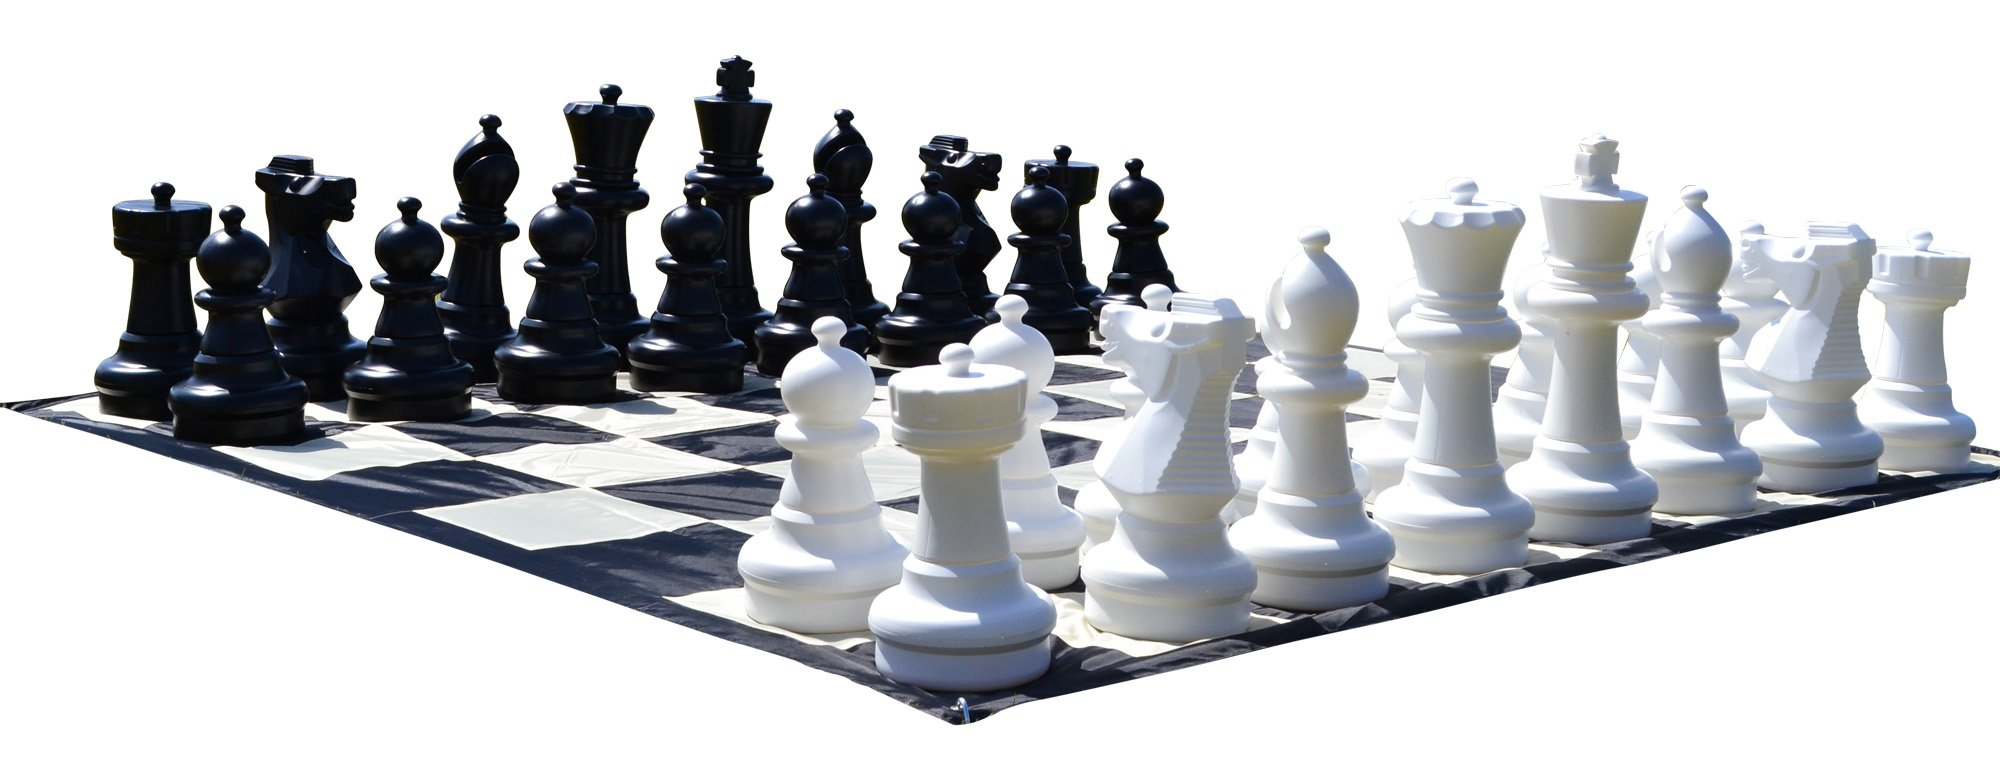 MegaChess Giant Premium Chess Set with 25 Inch Tall King and Giant Chess Mat - Black and White